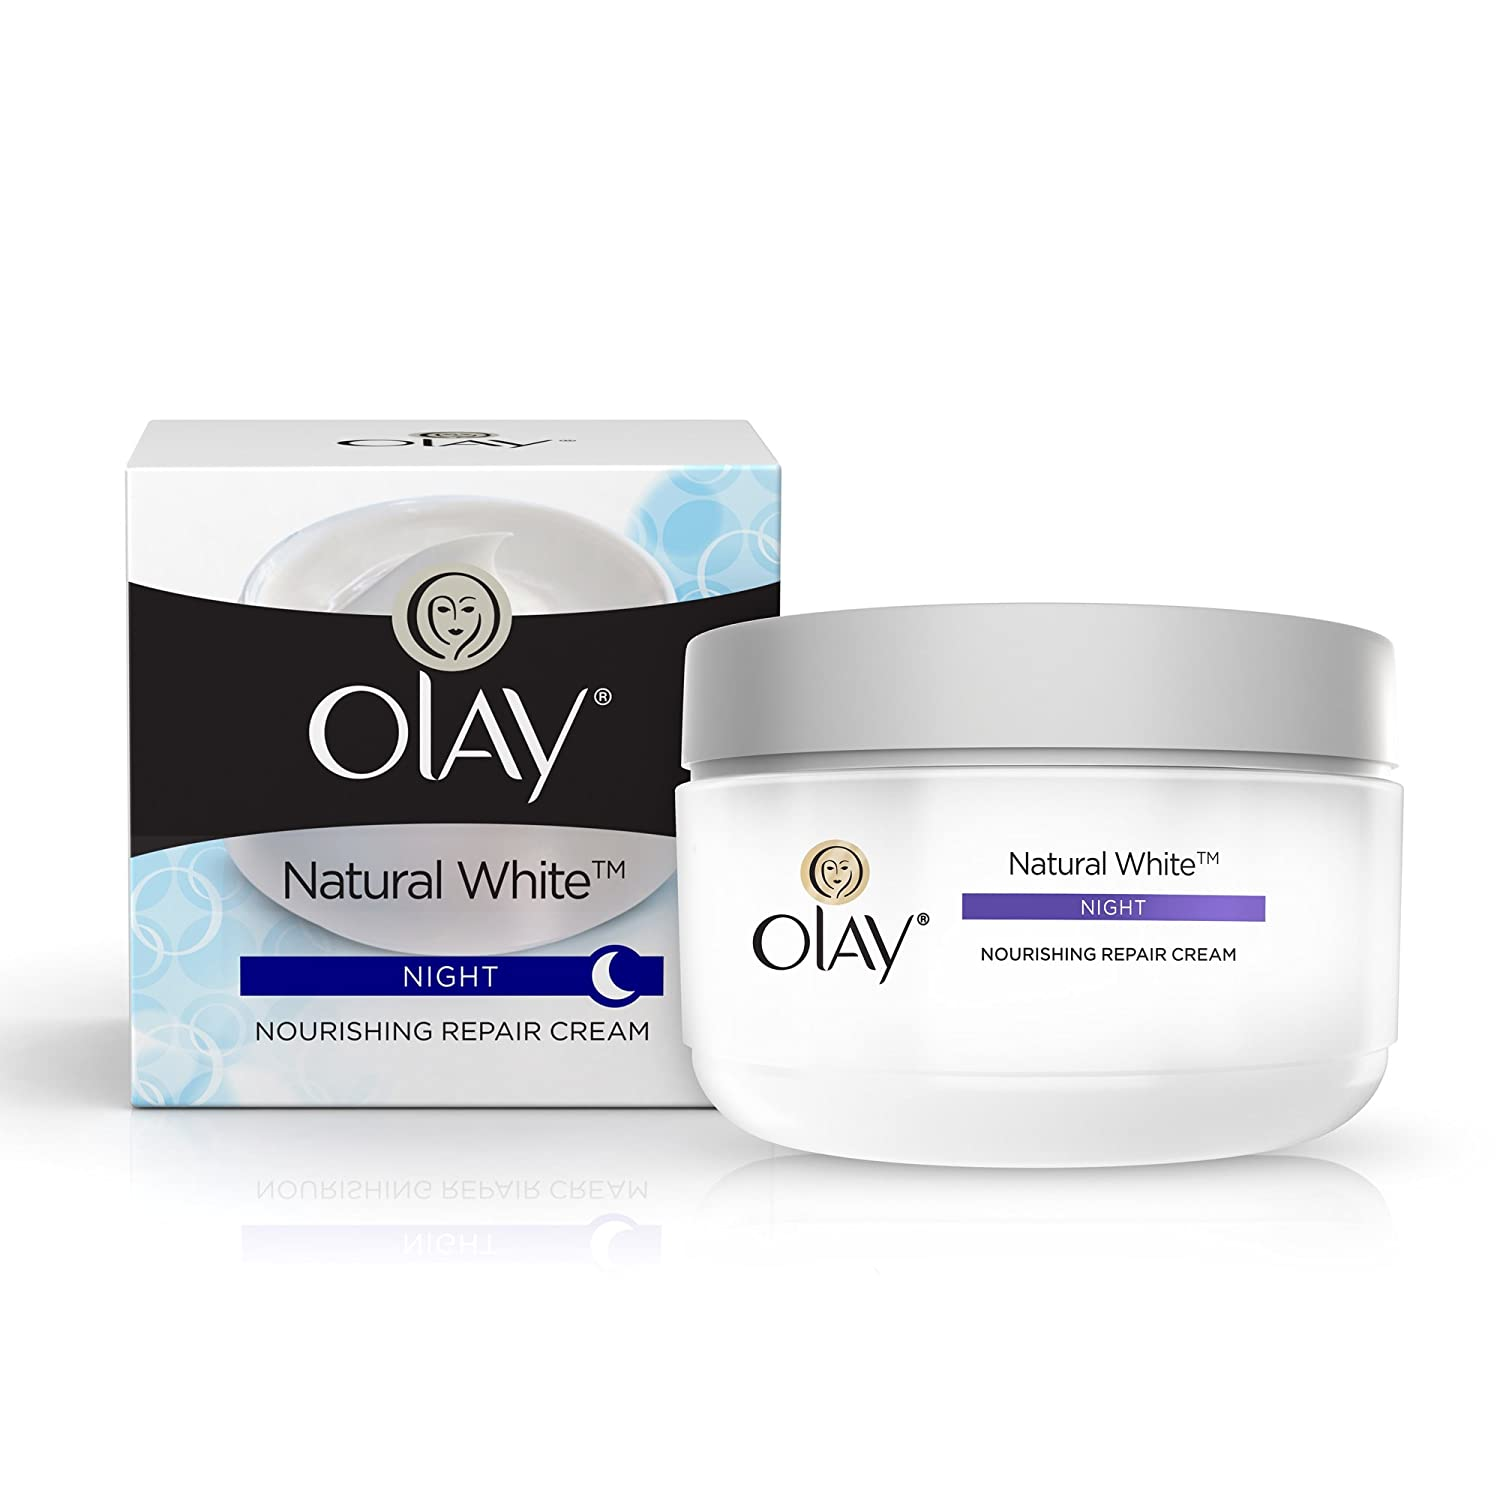 Olay Natural White All in One Fairness Night Skin Cream - 50 gm Procter and Gamble A-667